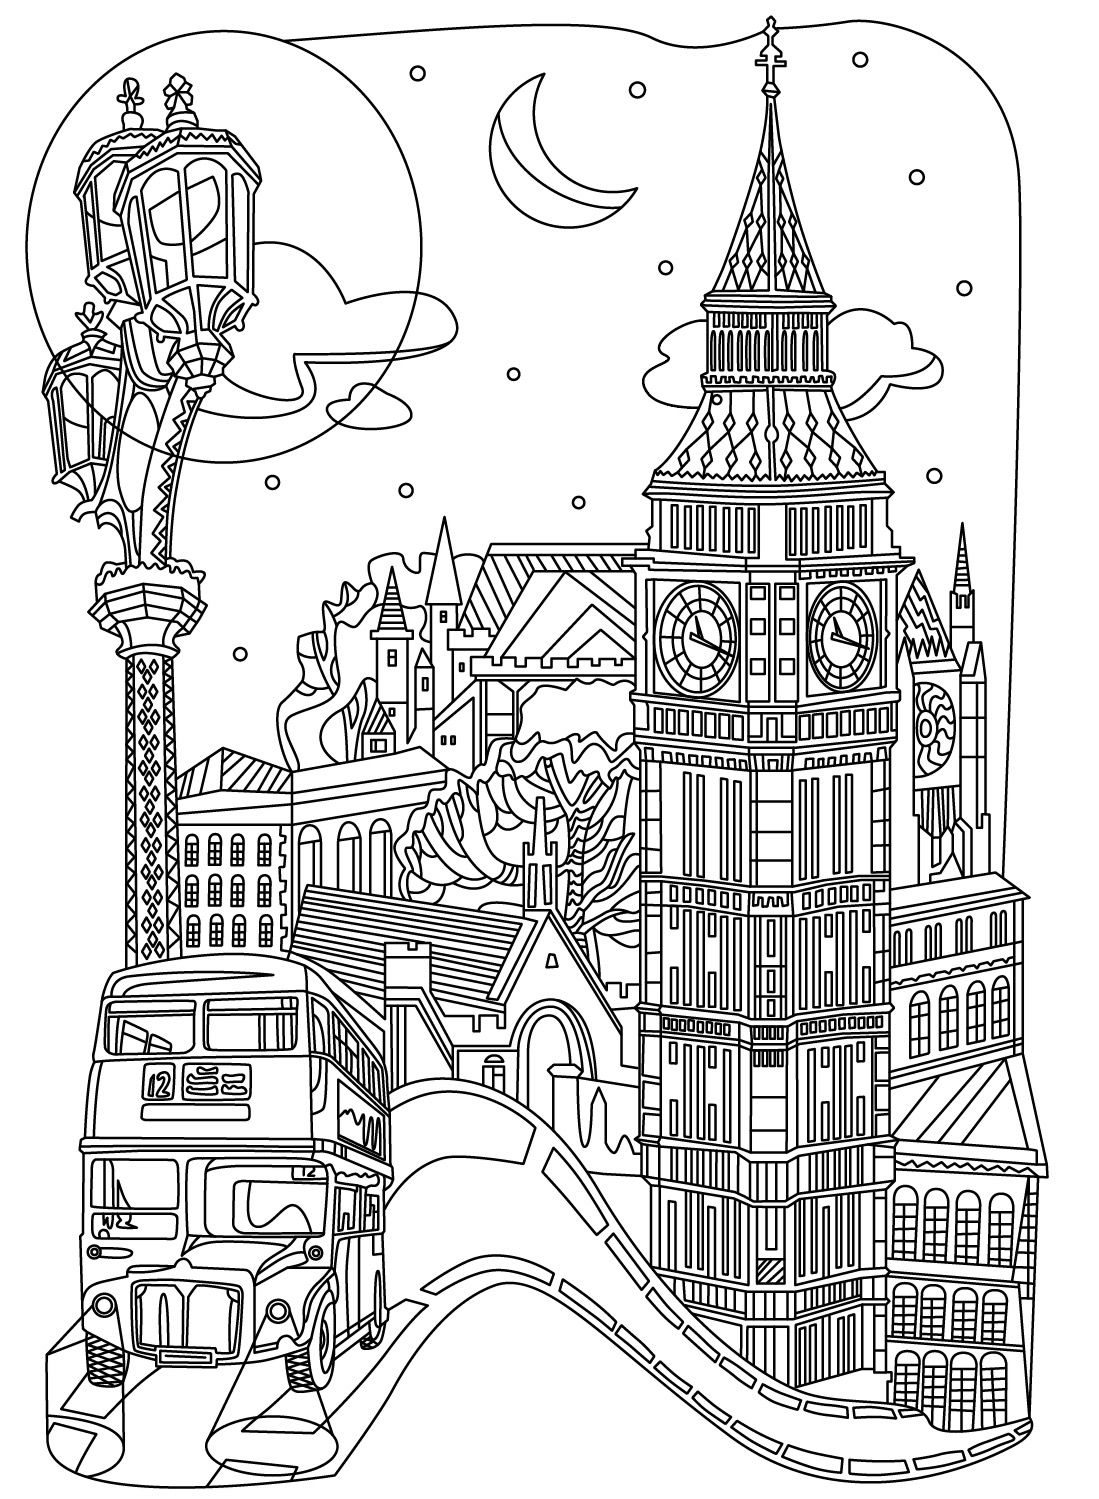 Cities Colorish Coloring Book App For Adults Mandala Relax By Goodsofttech Coloring Books Cross Coloring Page Detailed Coloring Pages